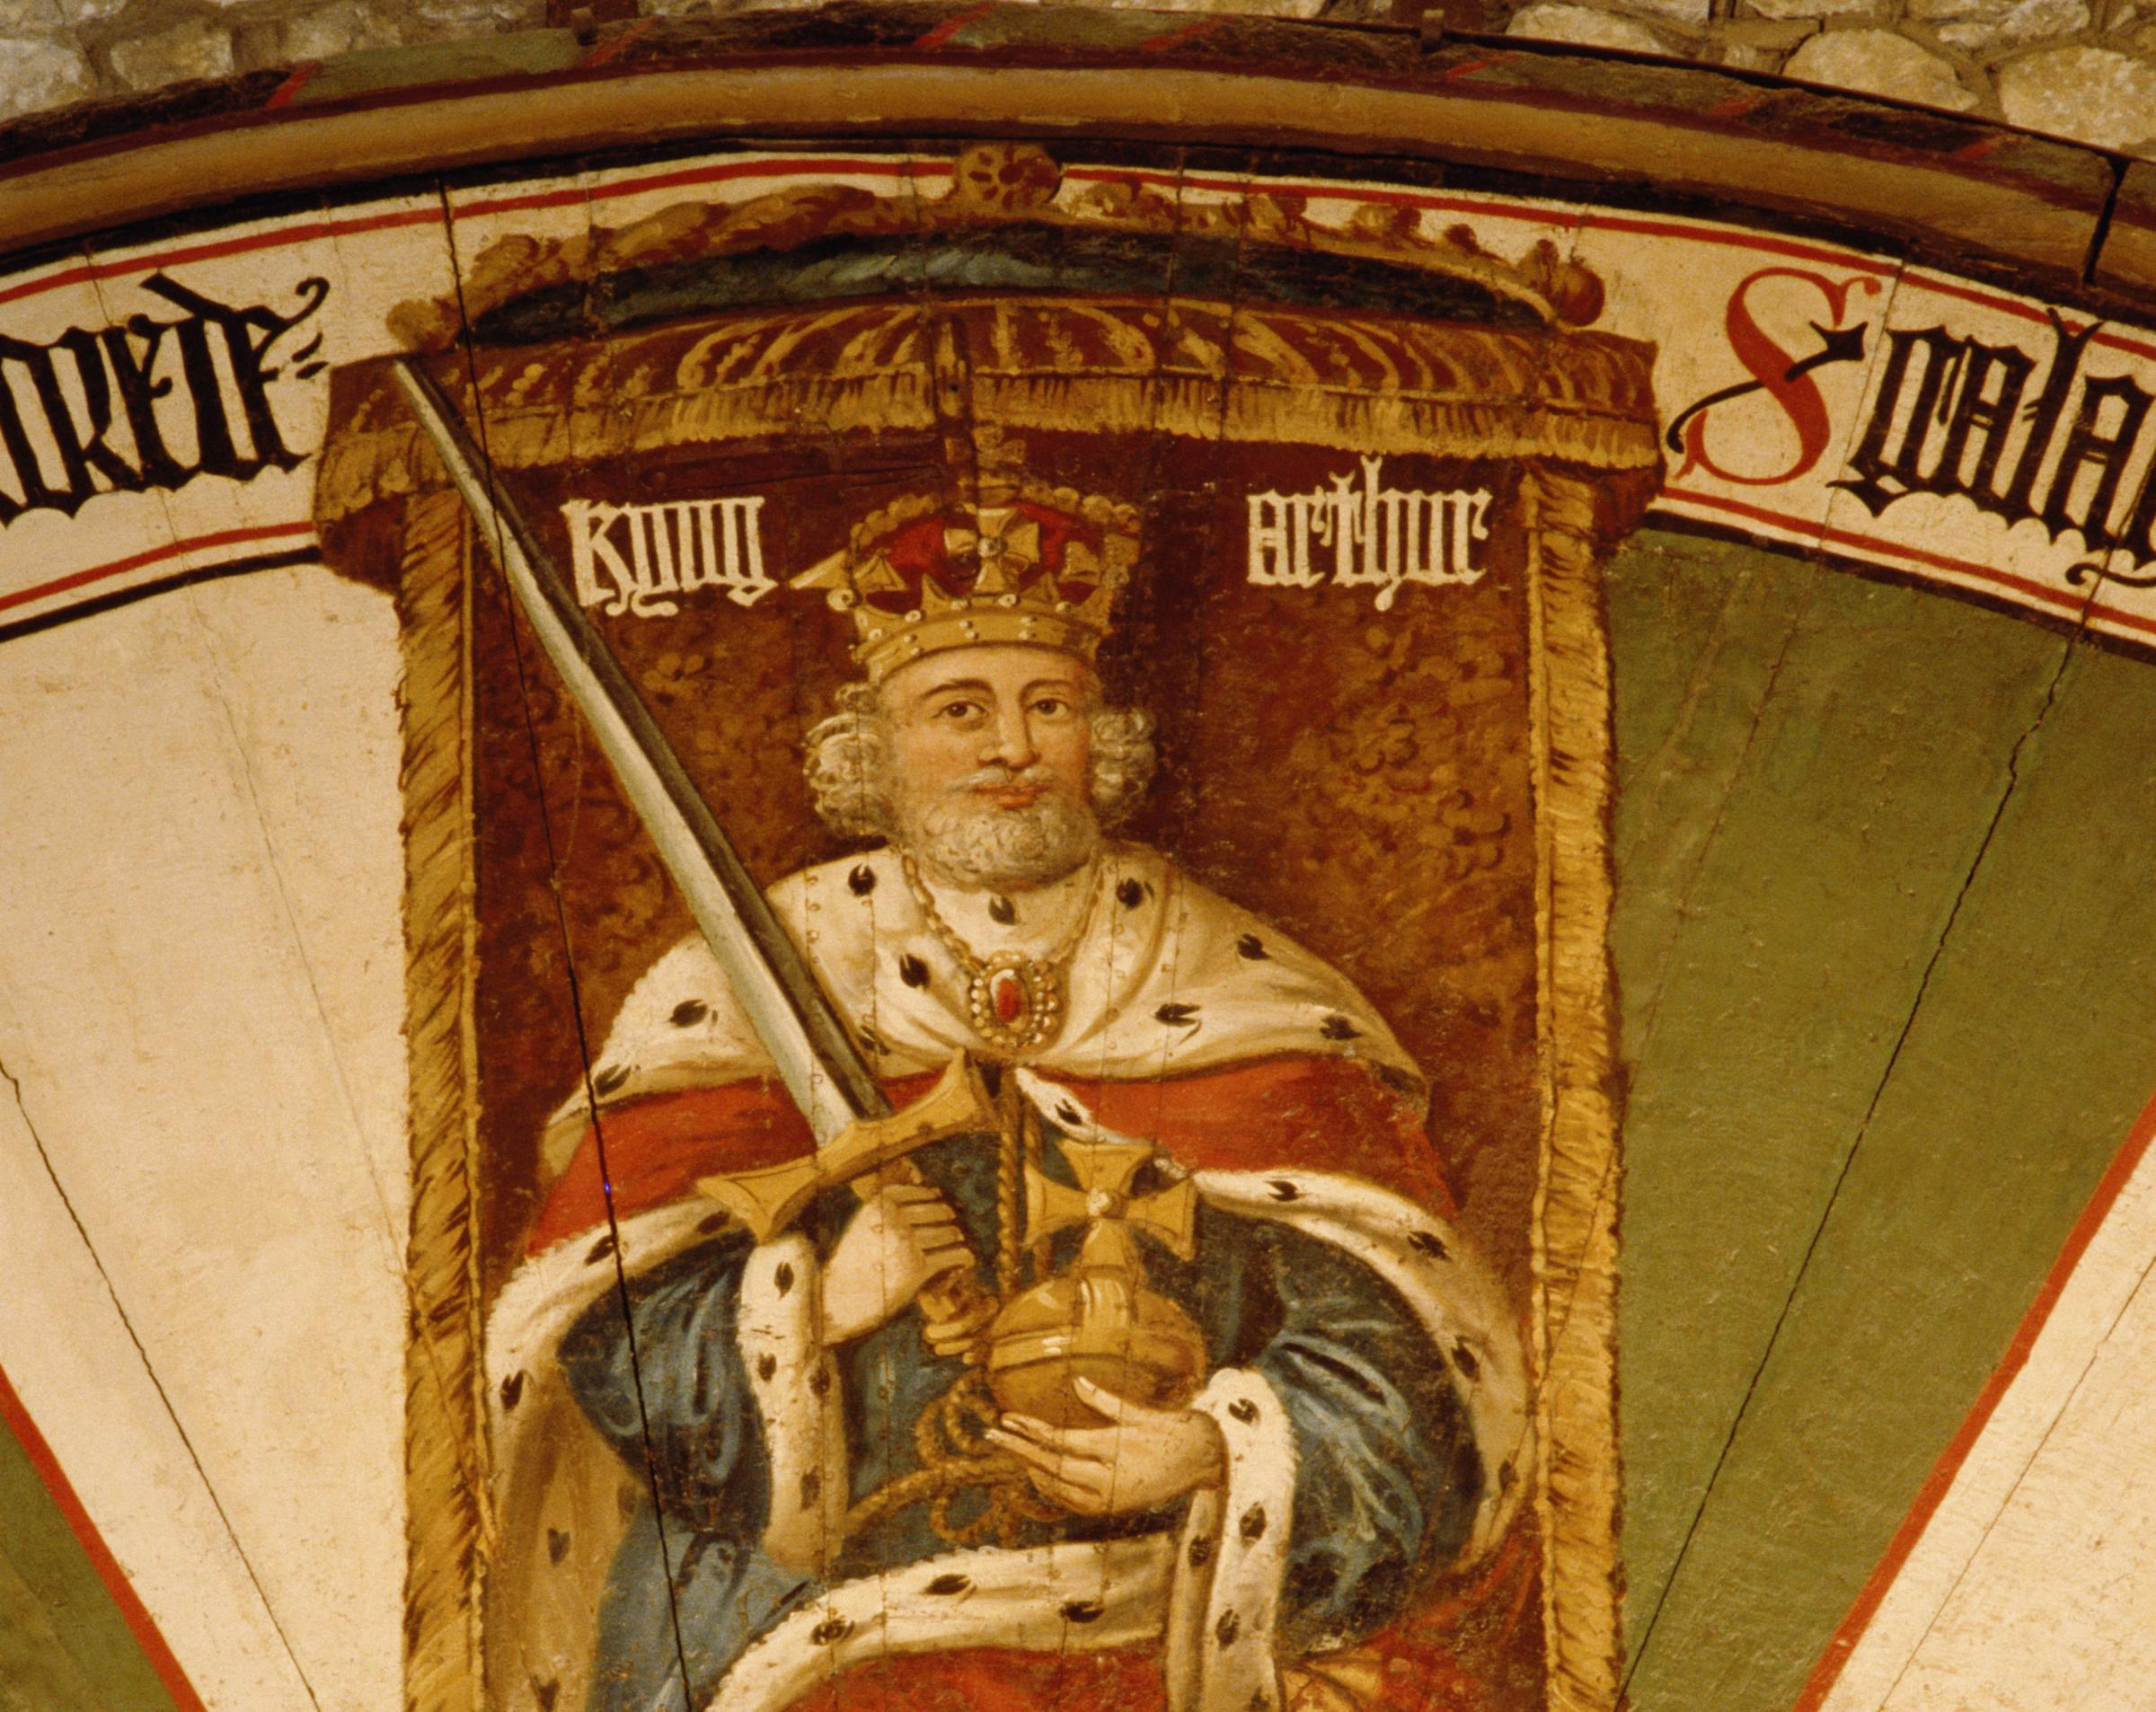 The identity of the 'real' King Arthur has been long disputed